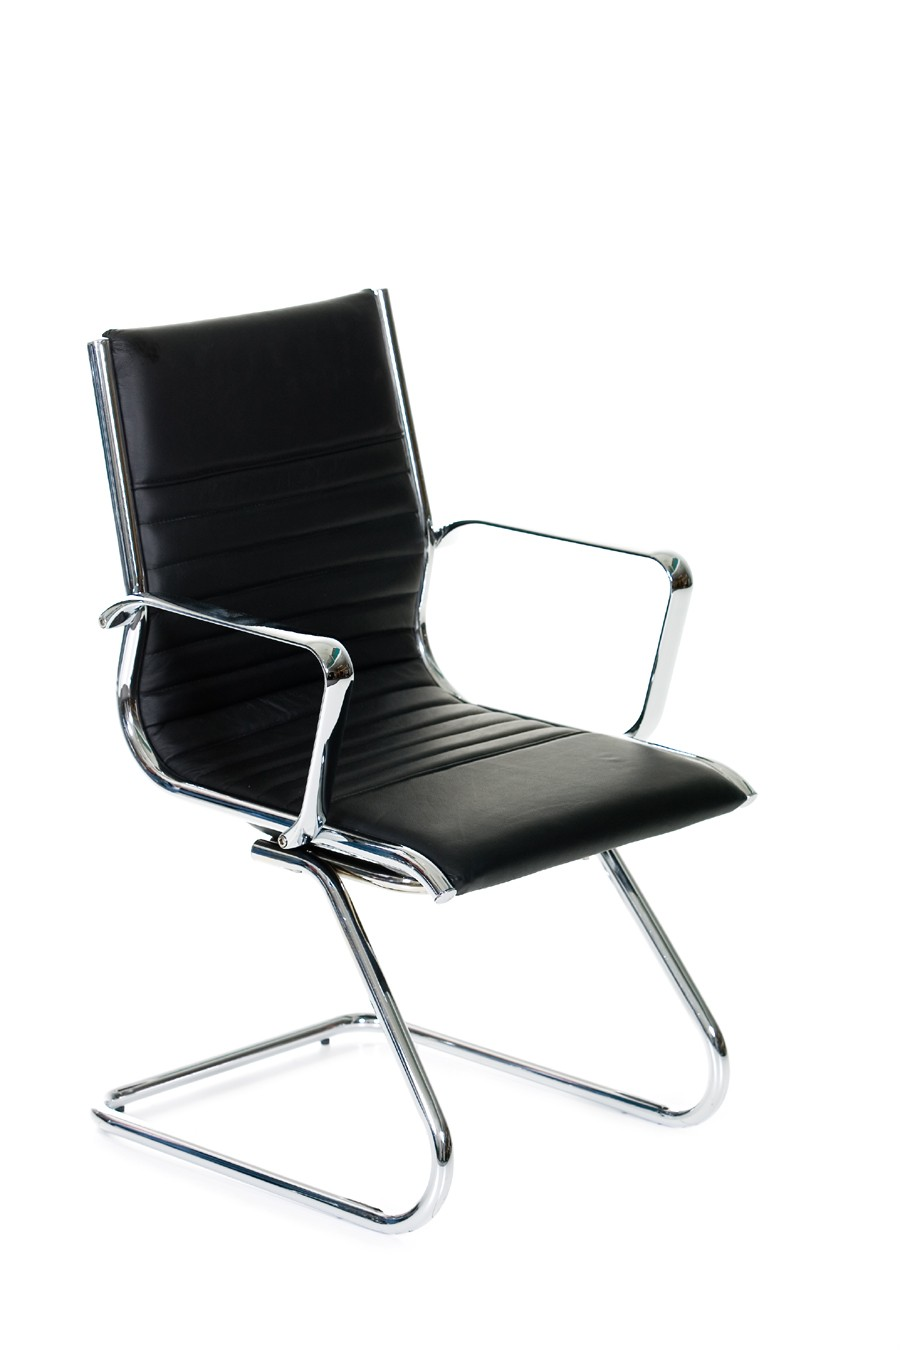 Eames Replica Eames Replica Boardroom Visitor Chair Visitor Chairs Chairs